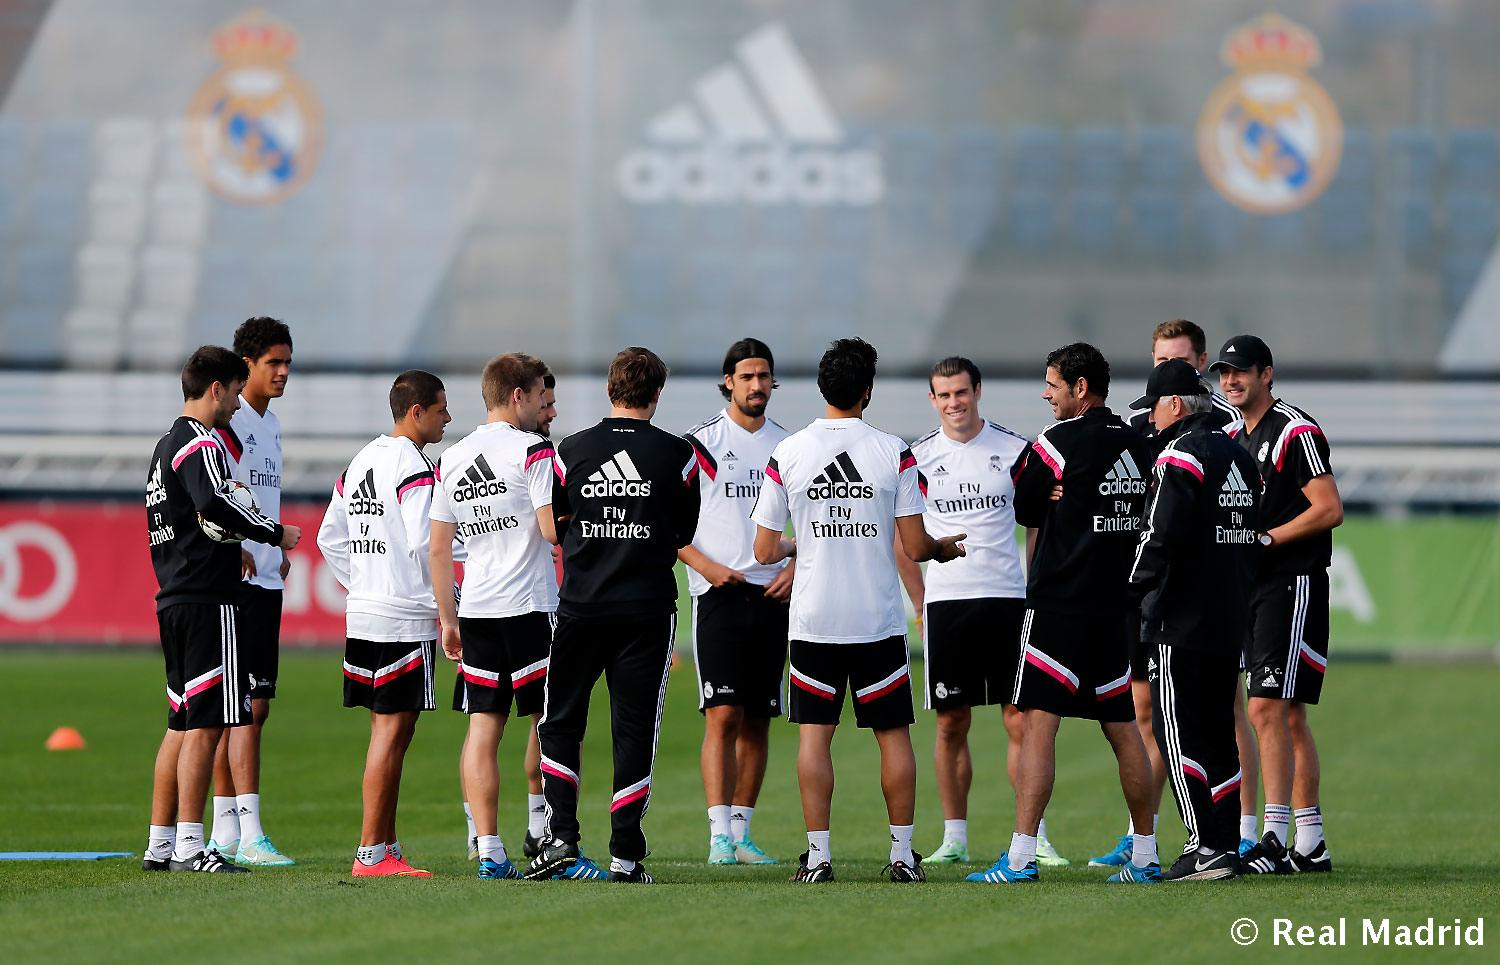 Real Madrid - Entrenamiento del Real Madrid - 02-11-2014